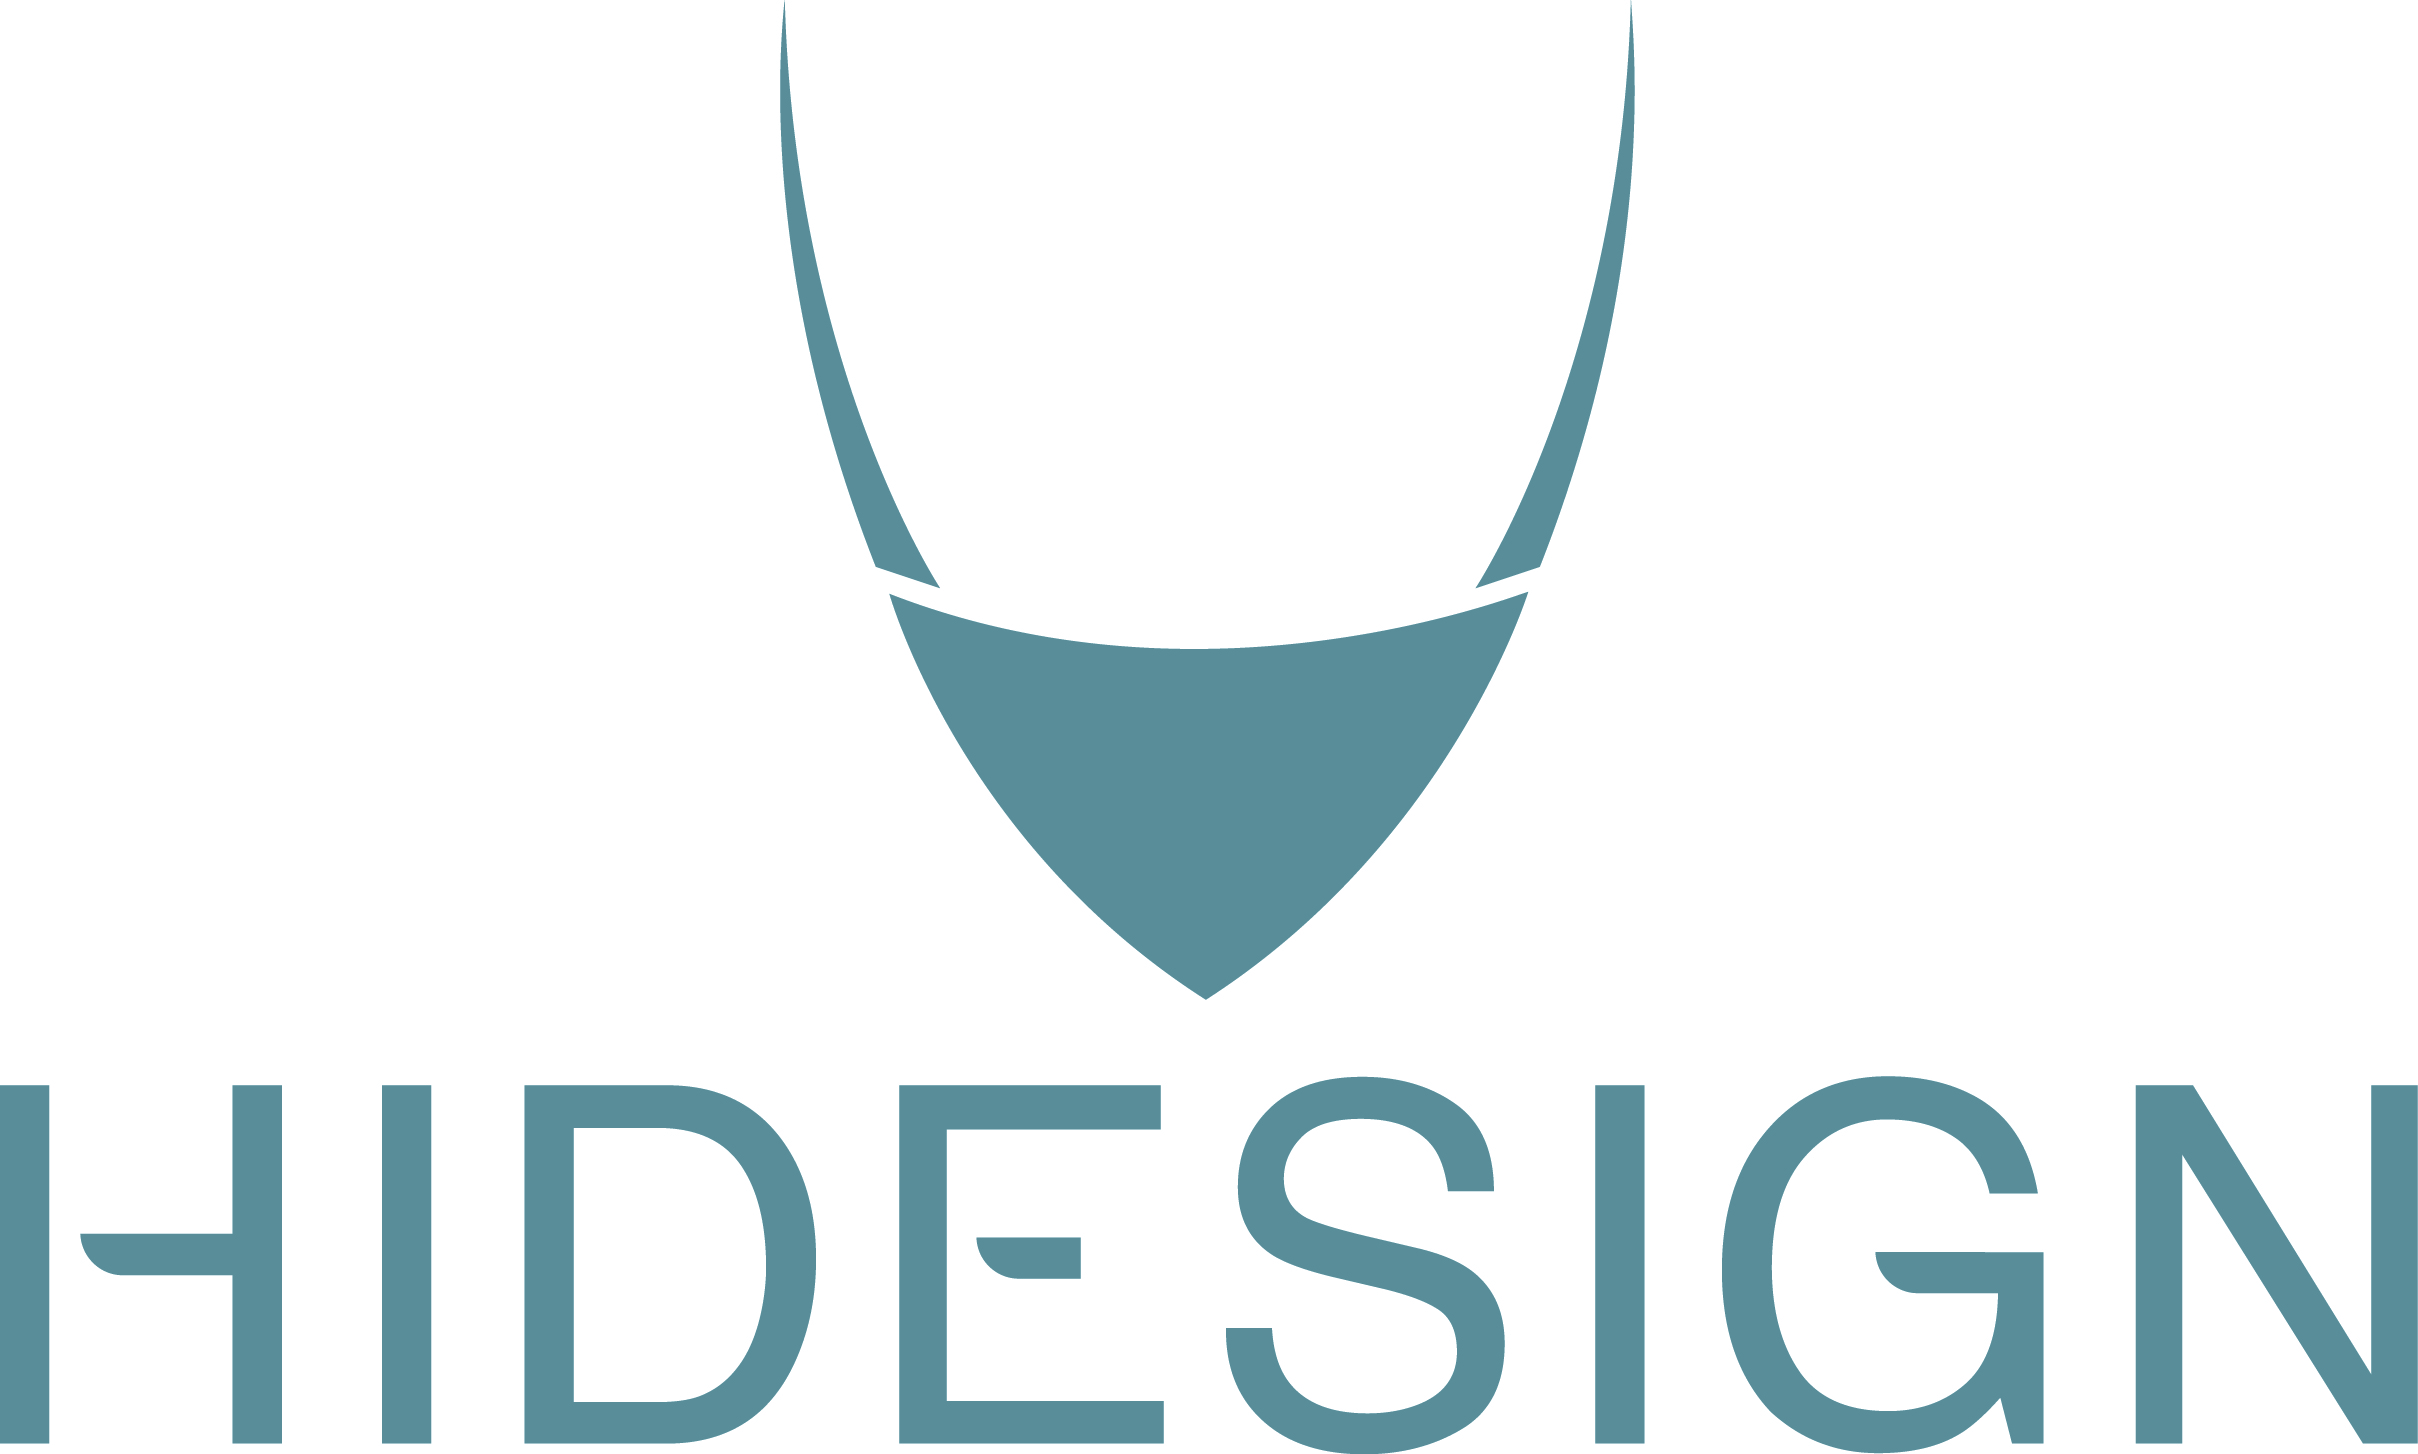 ​Hidesign is set to make international foray